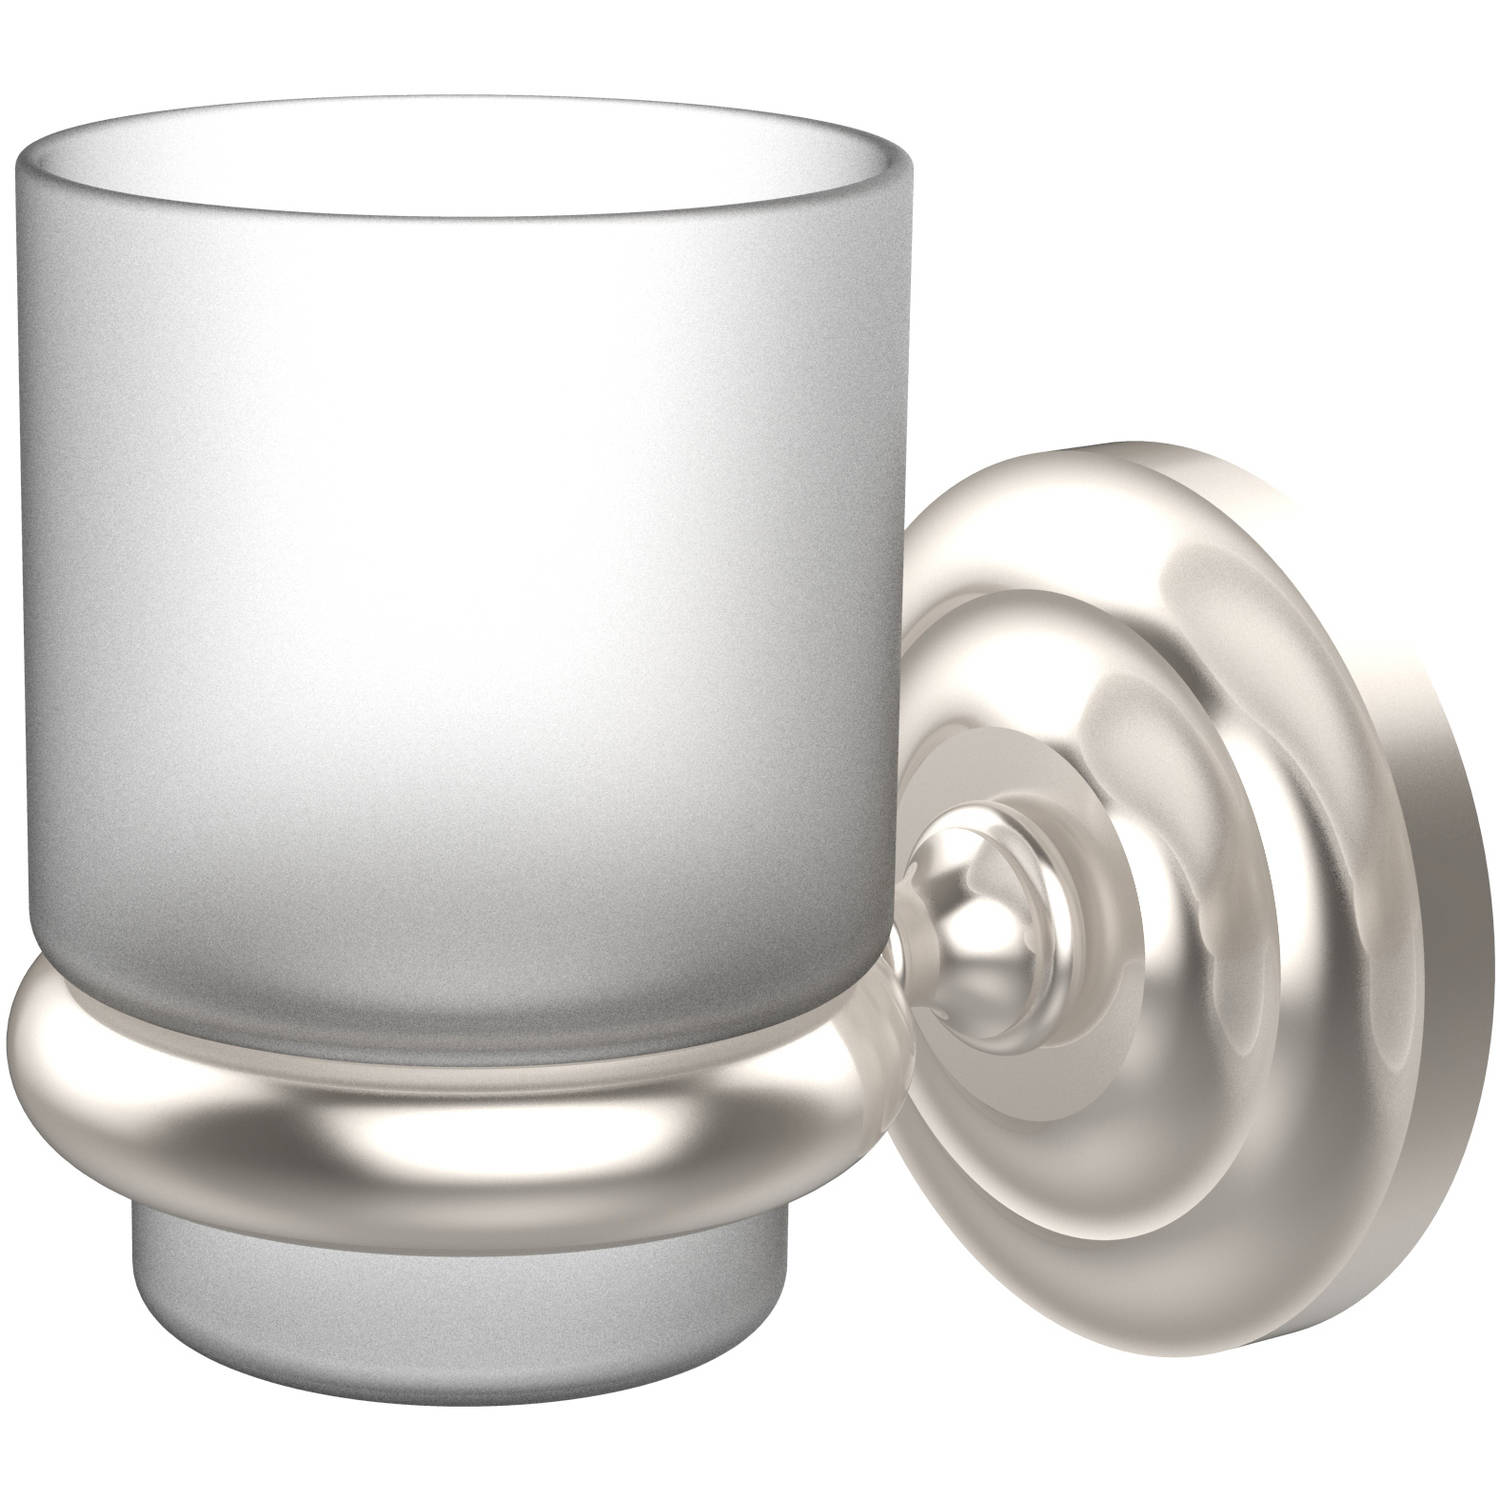 Prestige Que new Collection Wall-Mounted Tumbler Holder (Build to Order)